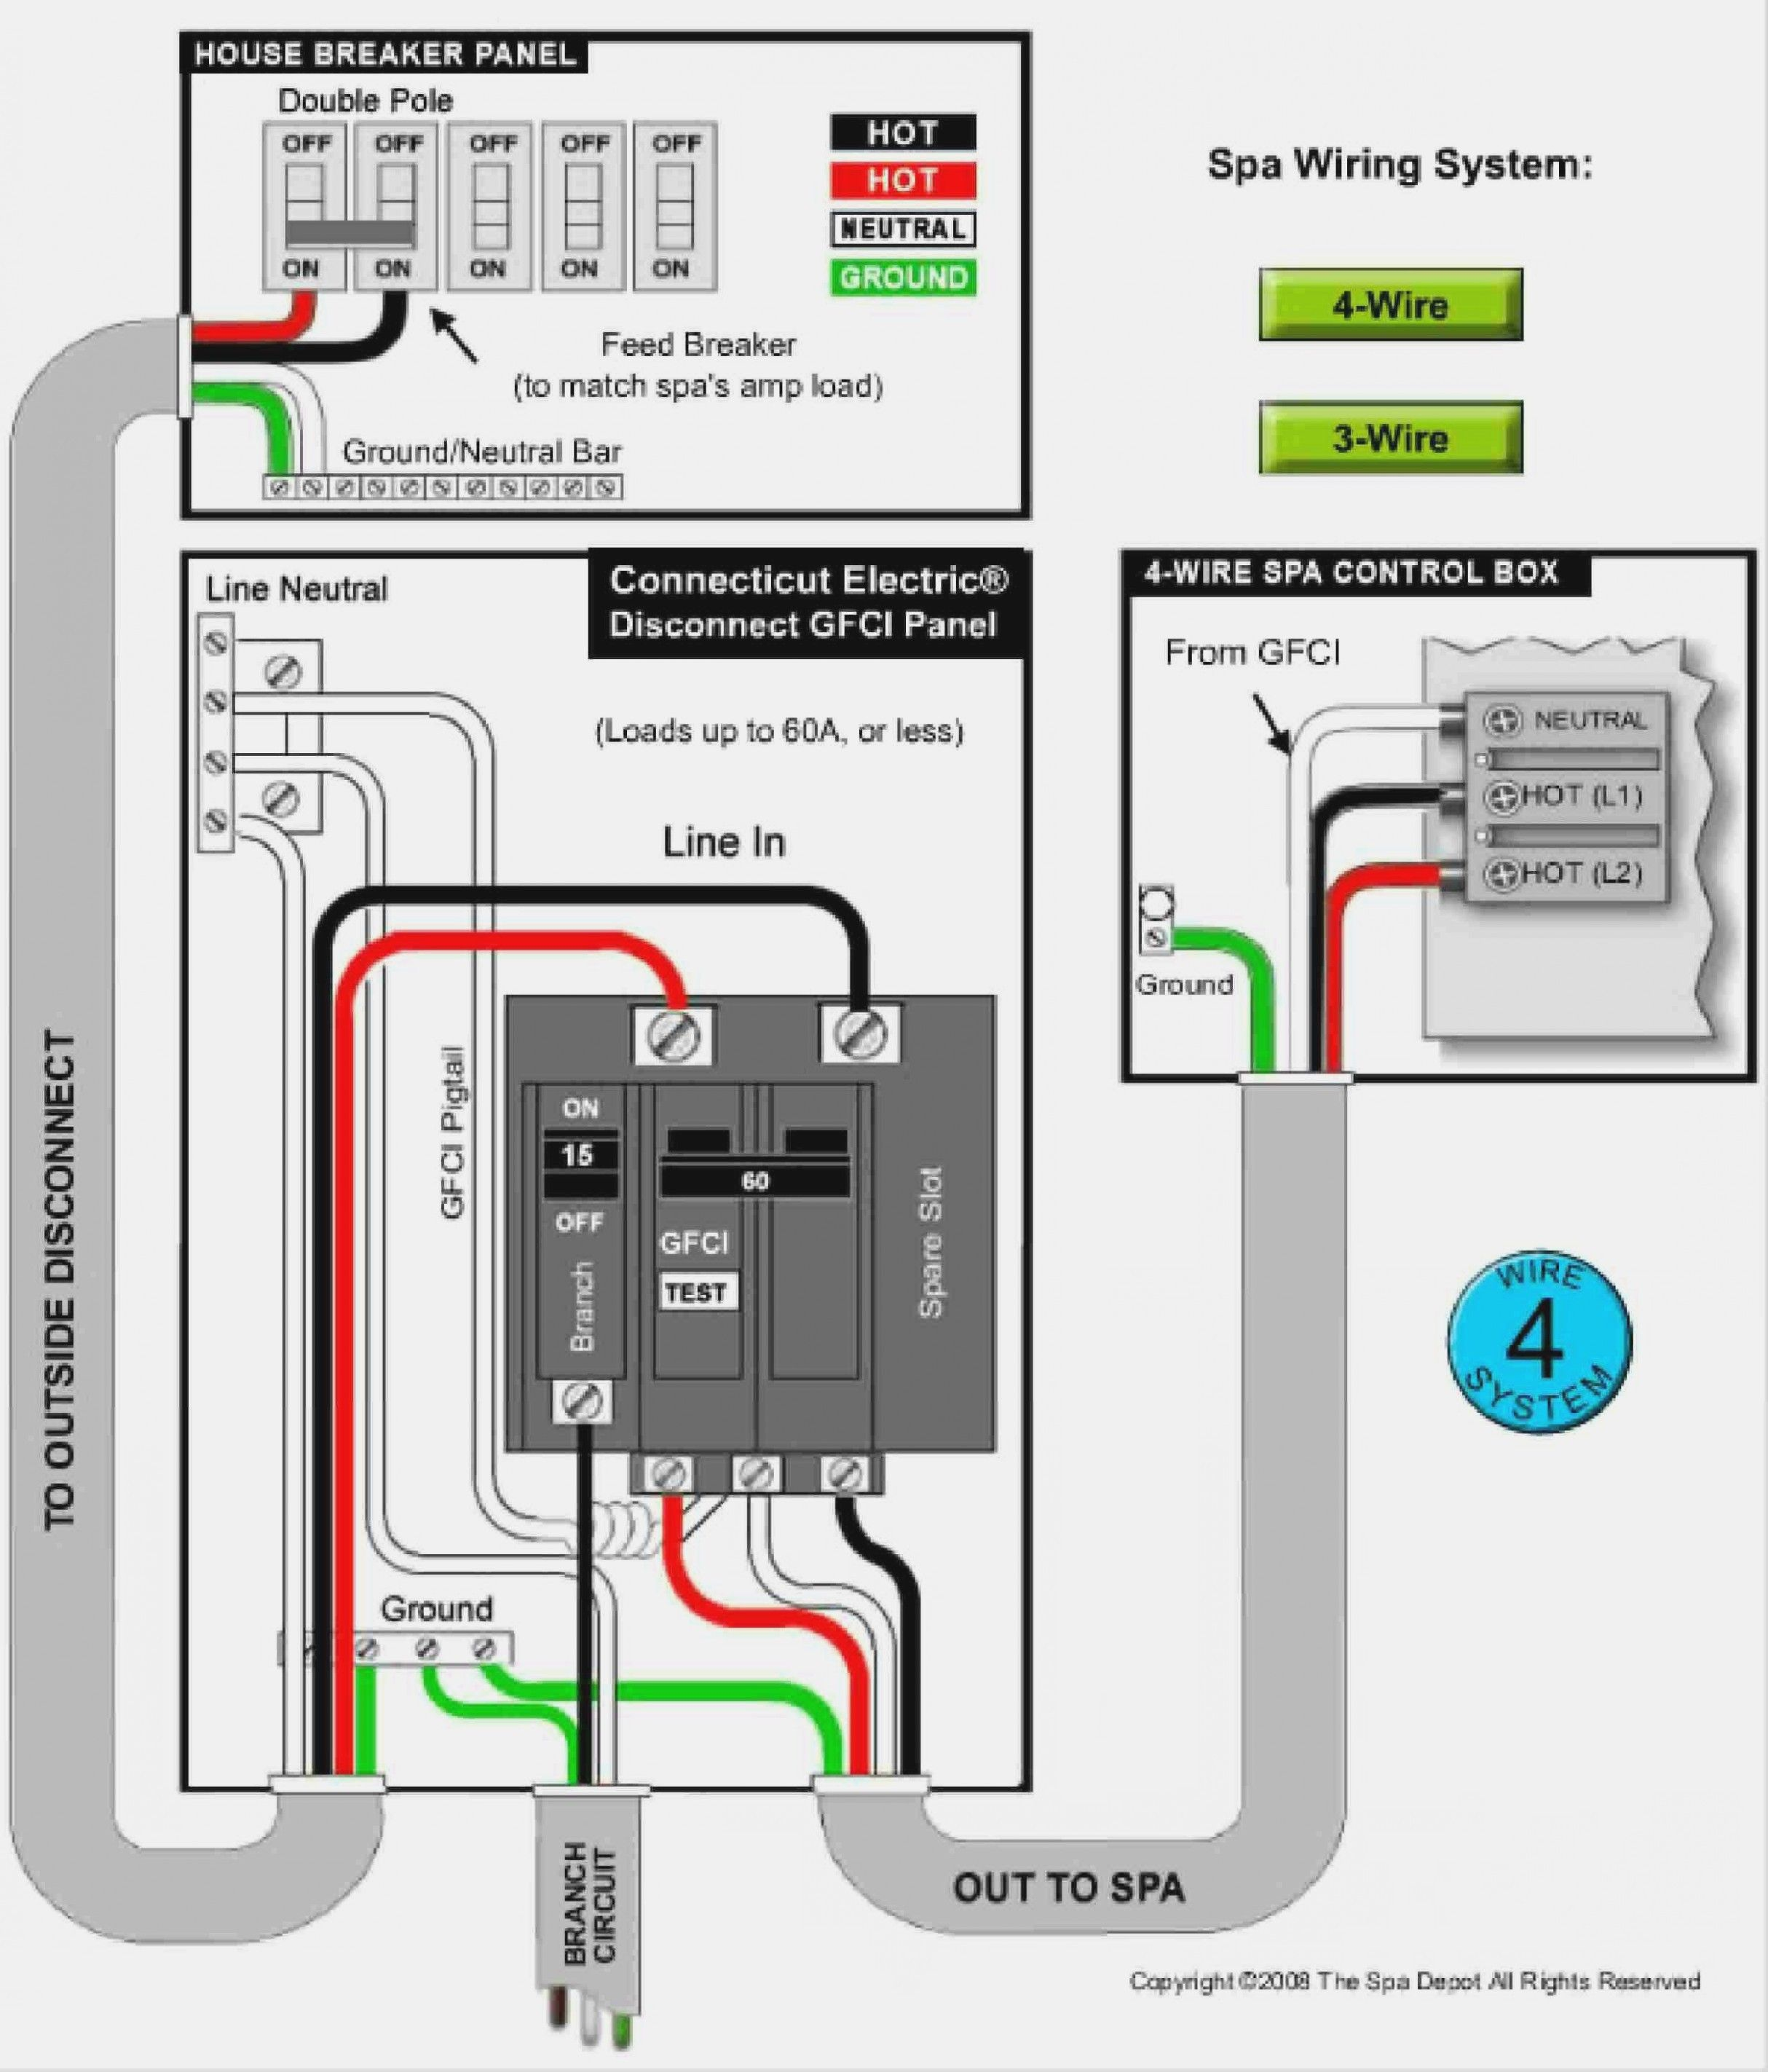 medium resolution of hot tub wiring schematic wiring diagram toolbox download diagram for hooking up a pool hot tub or spa